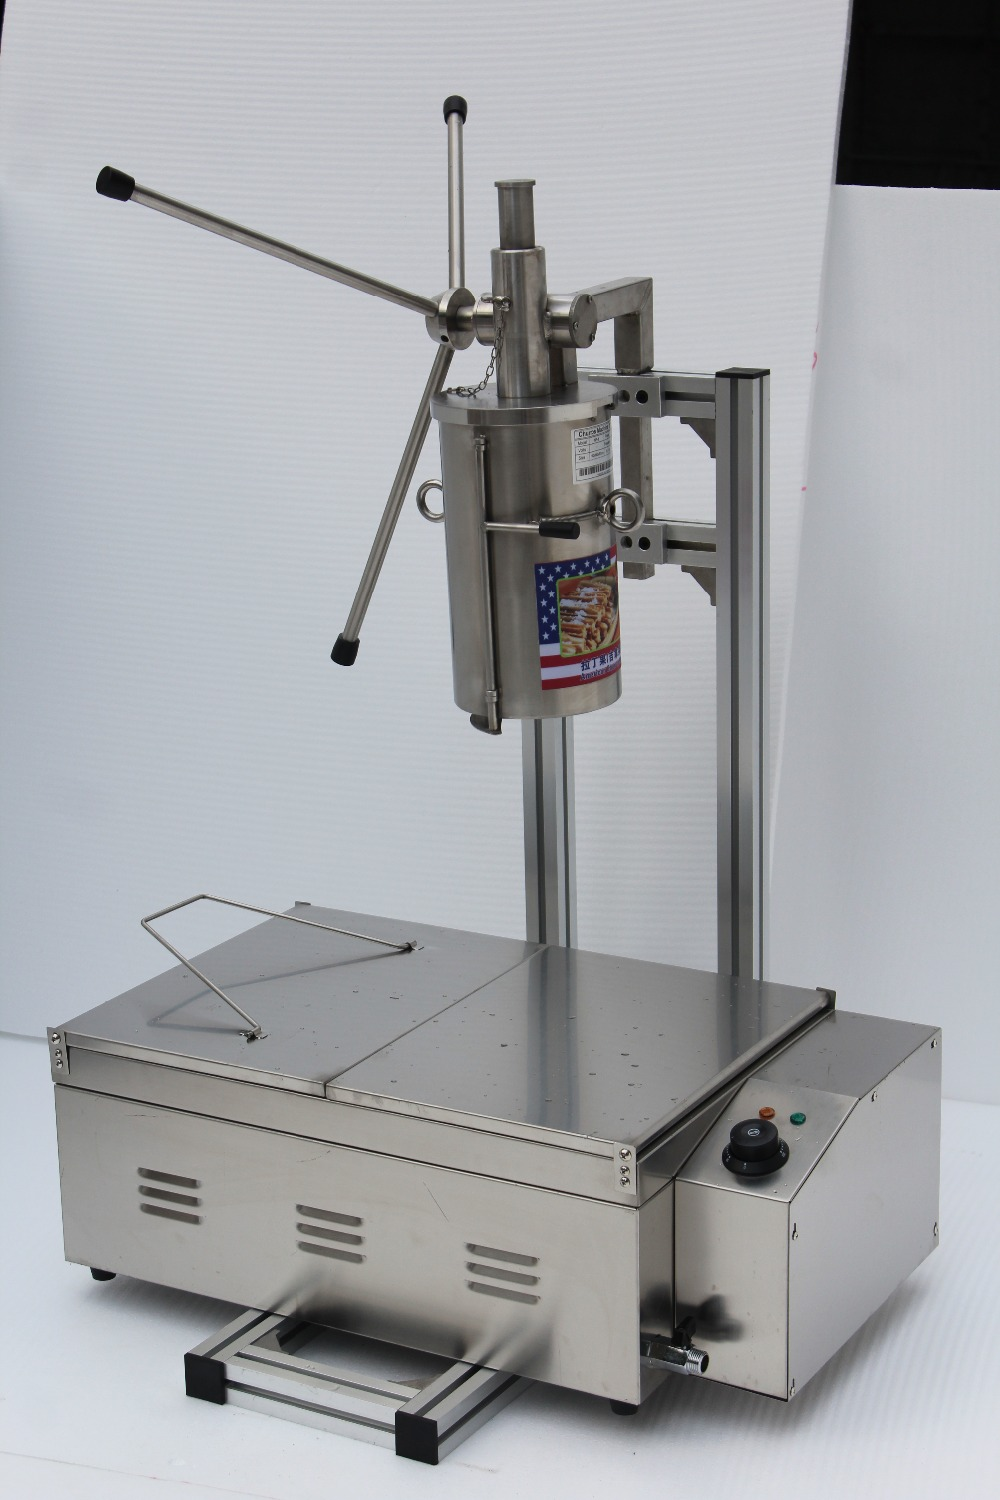 CE certificate stainless steel 5L churros making machine with cutter +25L electric fryer